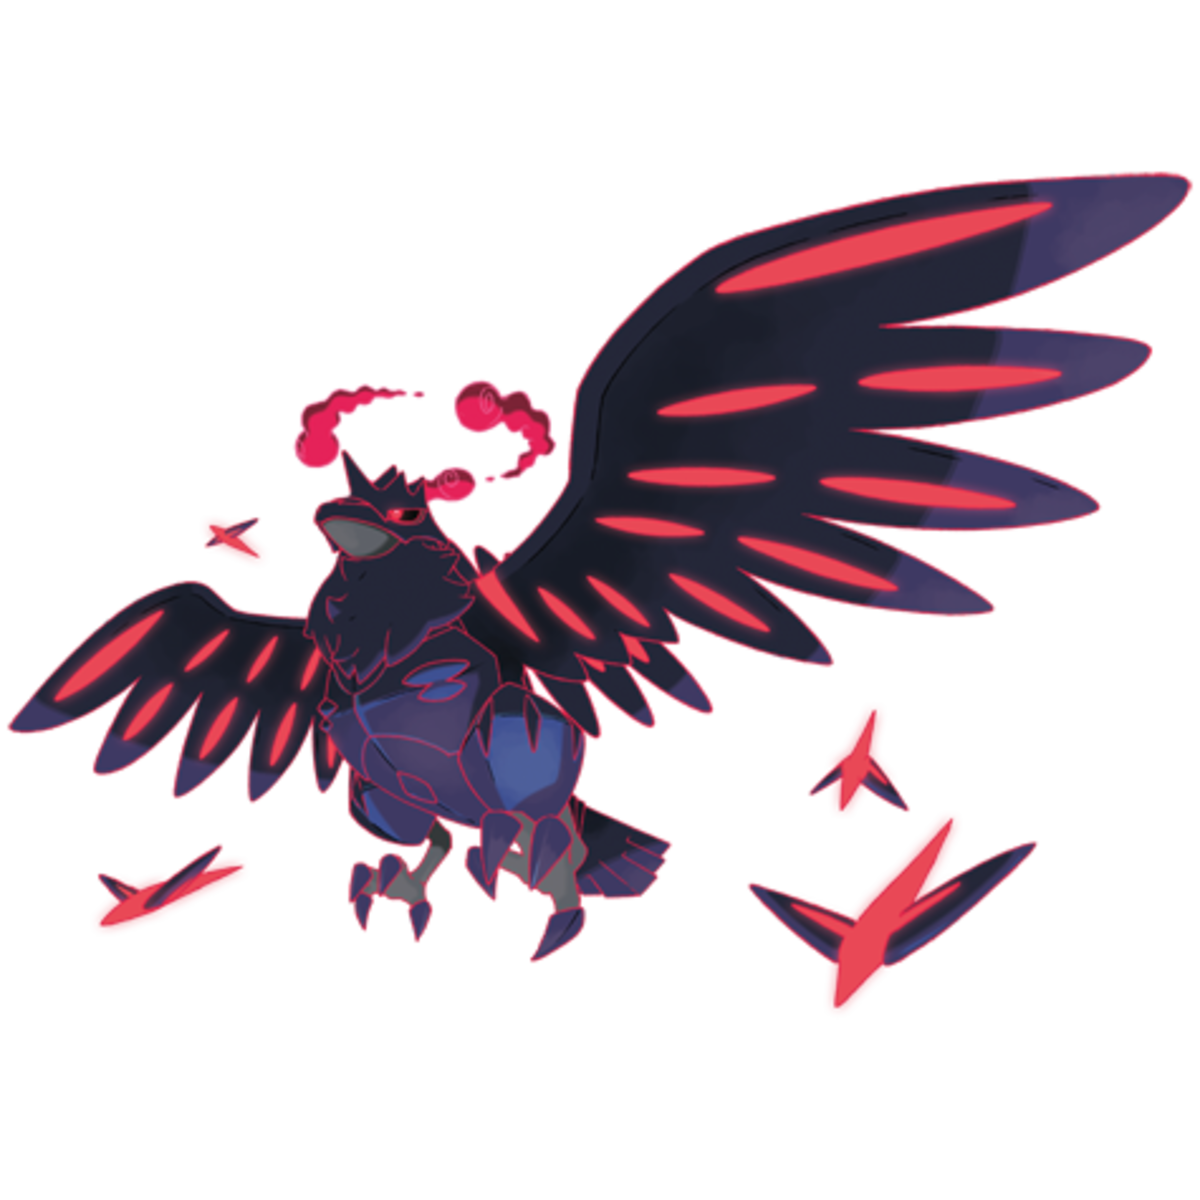 Corviknight's Gigantamax form